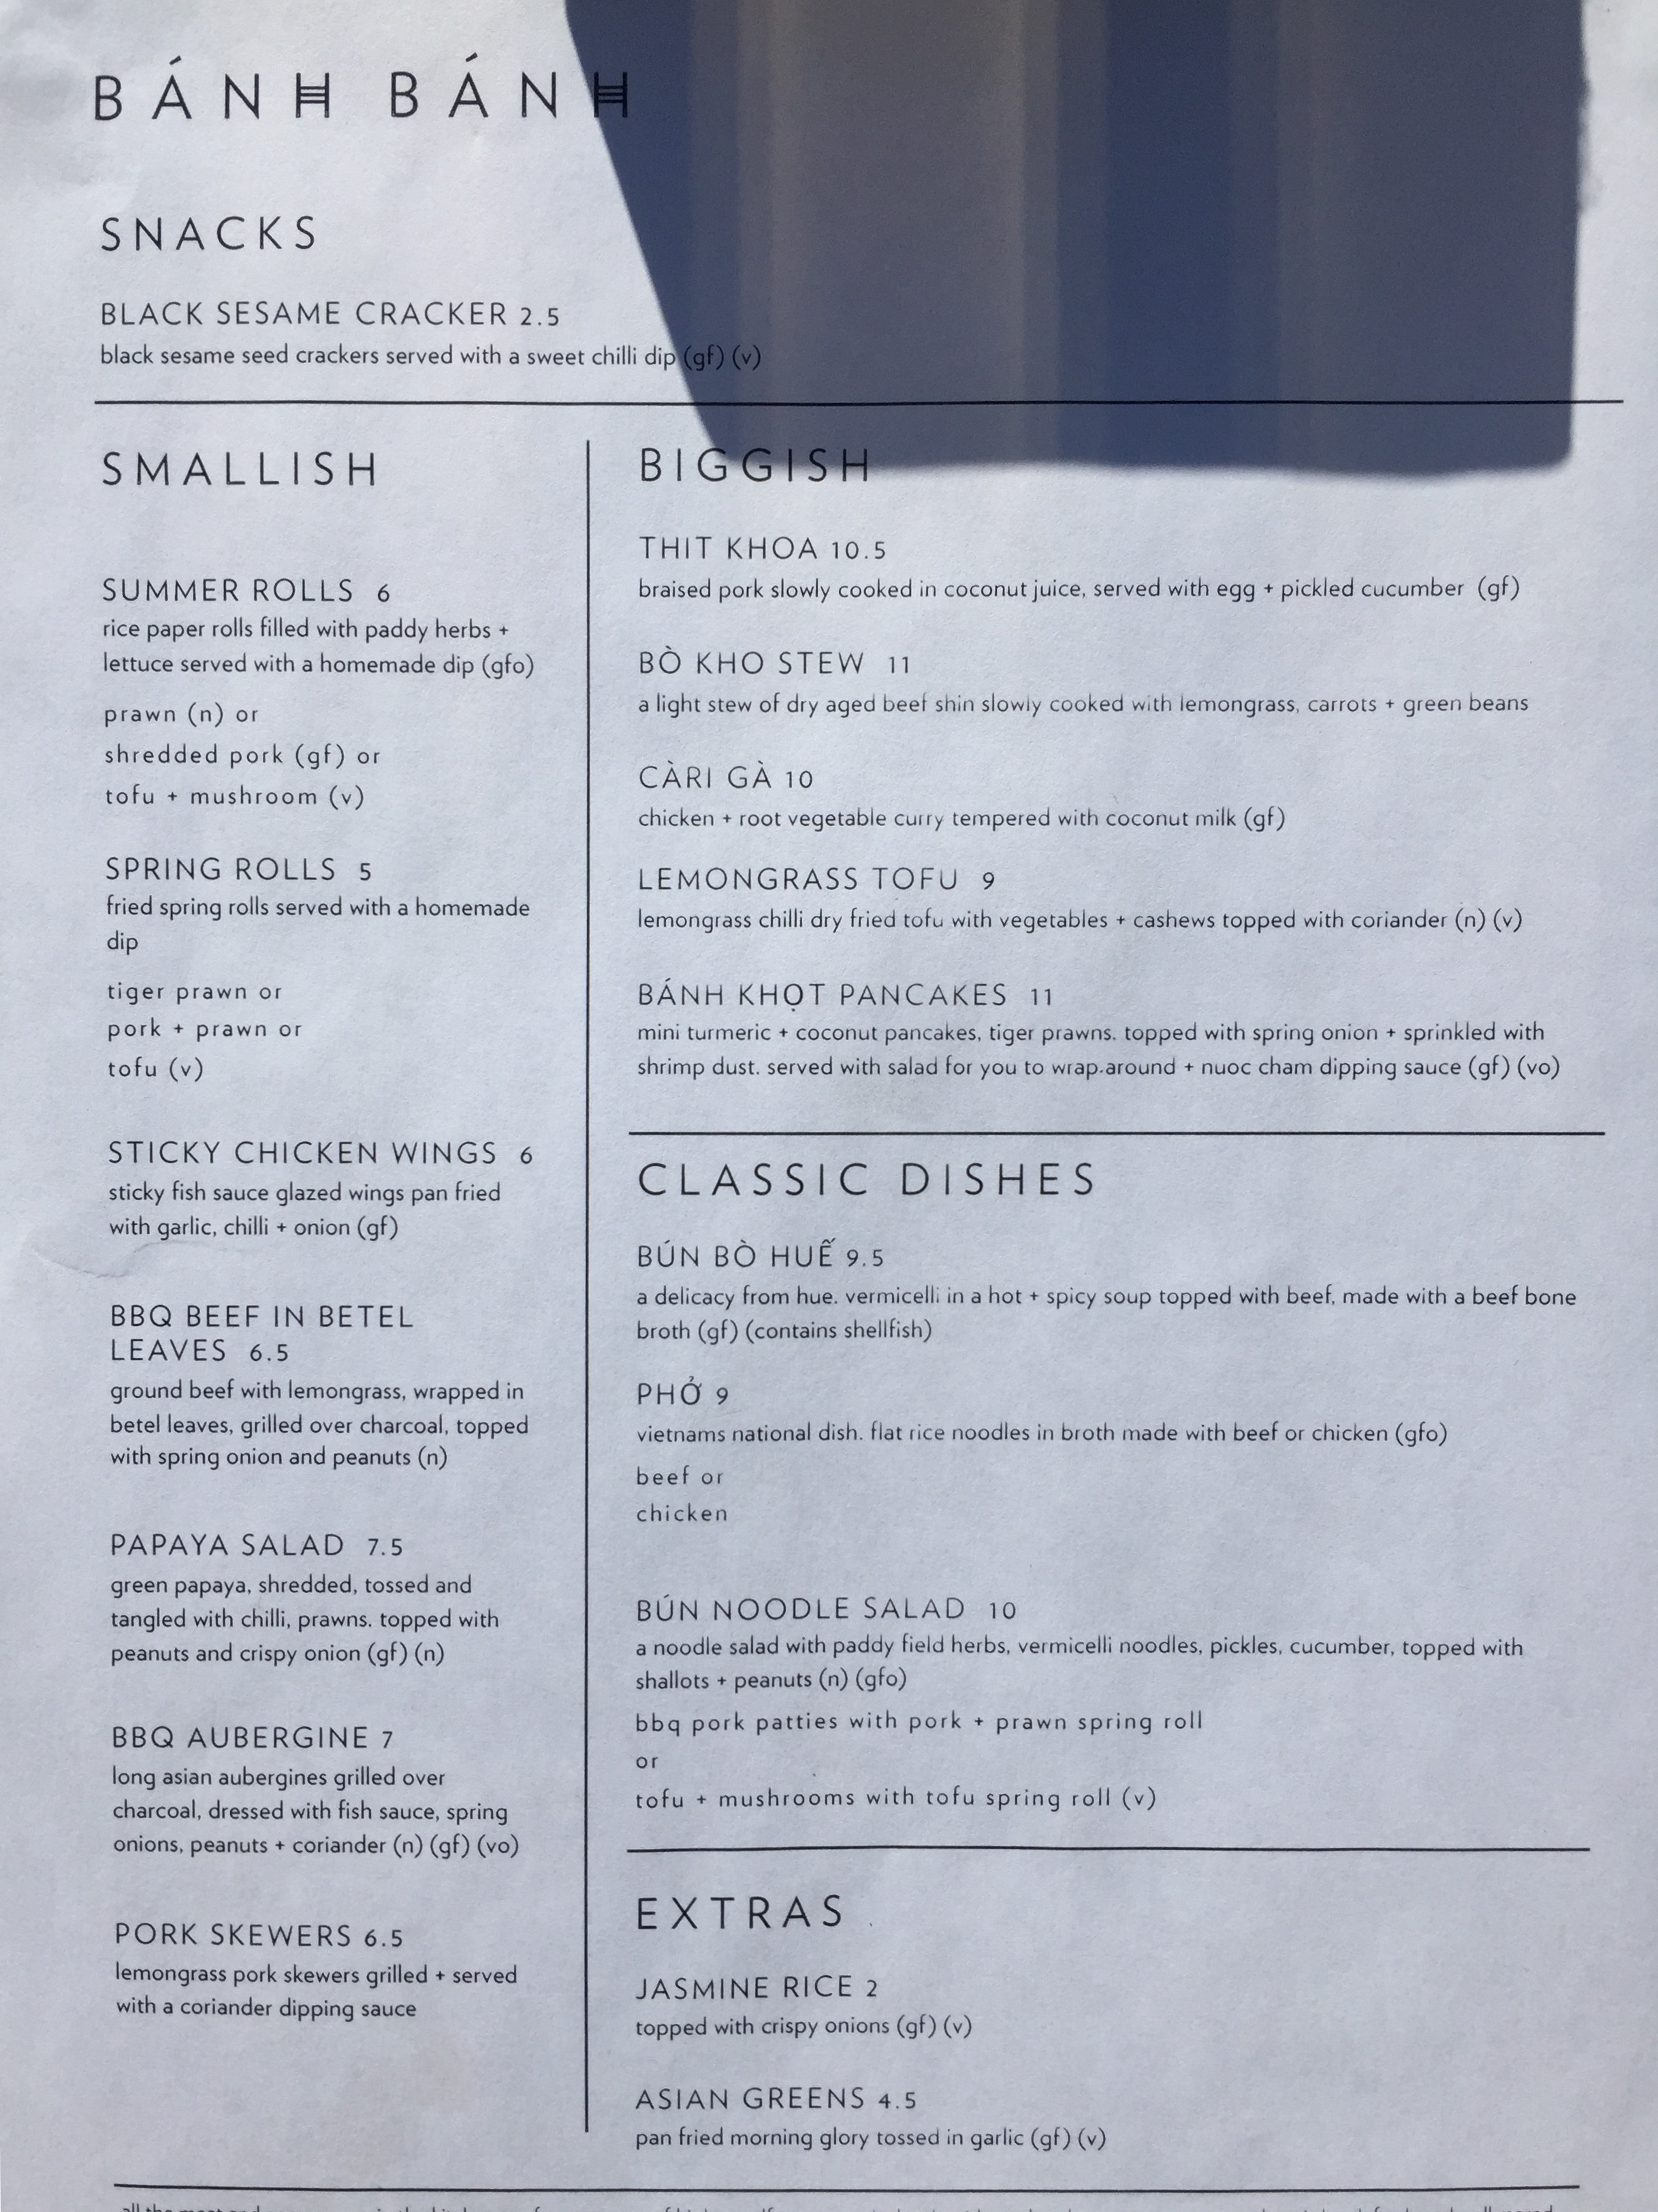 Current menu - we were told that desserts will still be added here